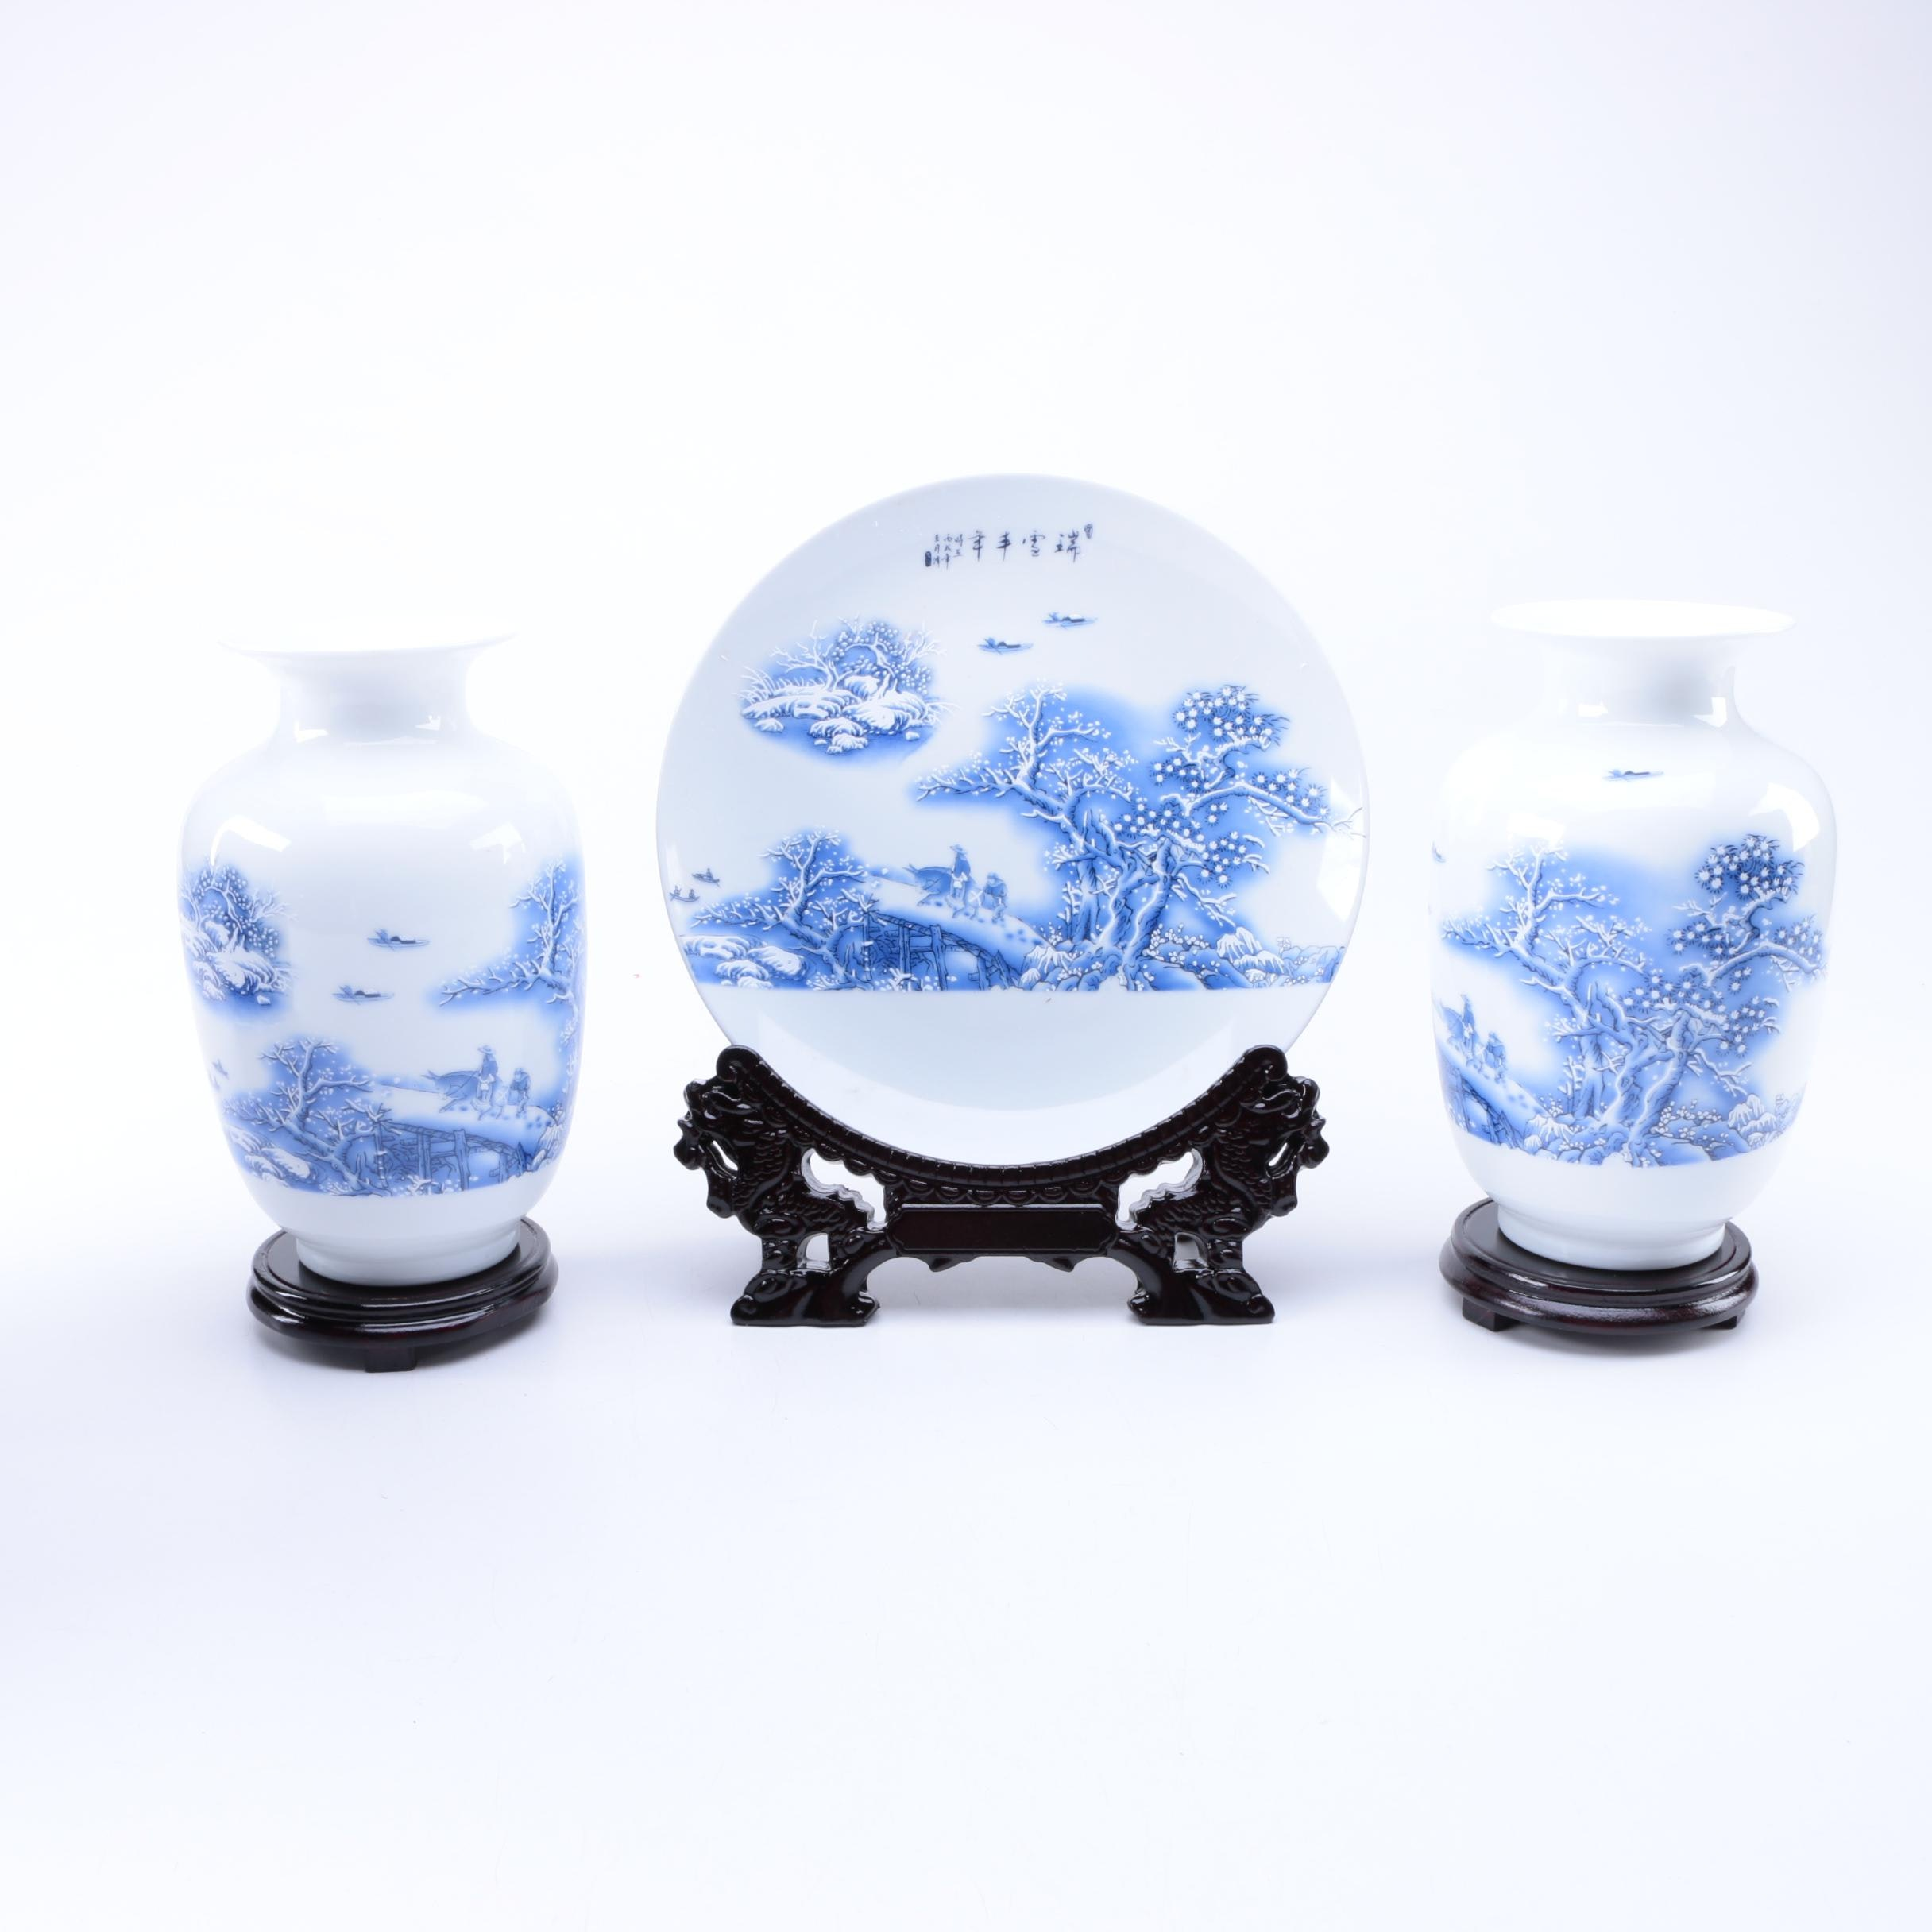 Chinese Blue and White Porcelain Vase and Plate Set